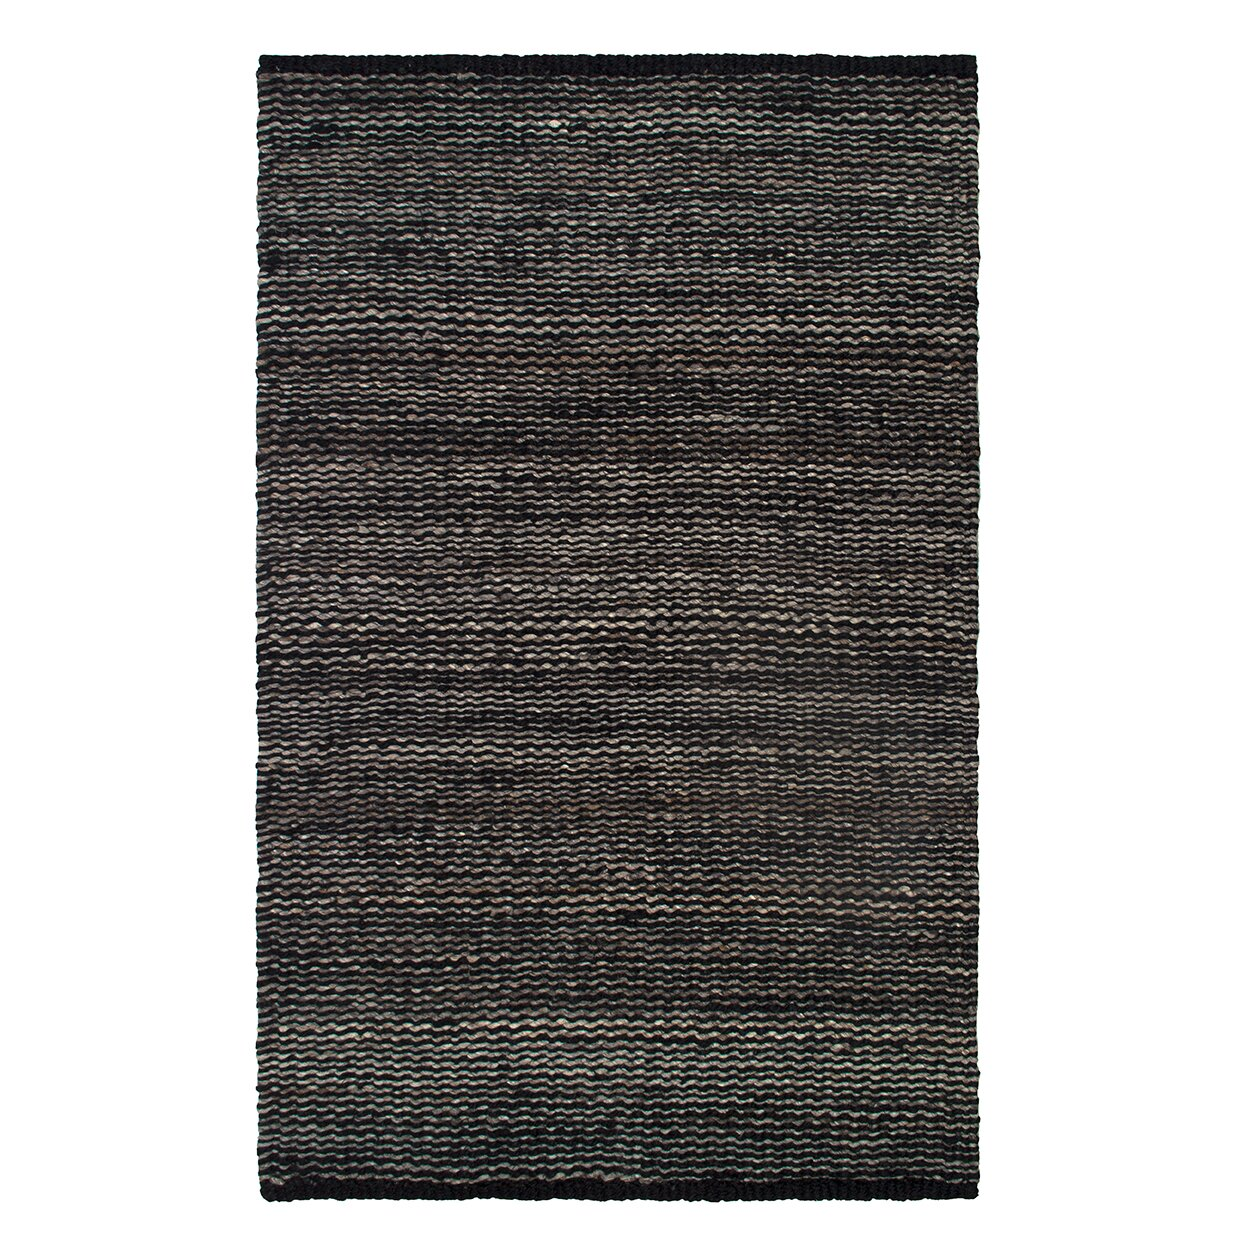 Fab habitat heartland hand woven indoor outdoor area rug for Woven vinyl outdoor rugs